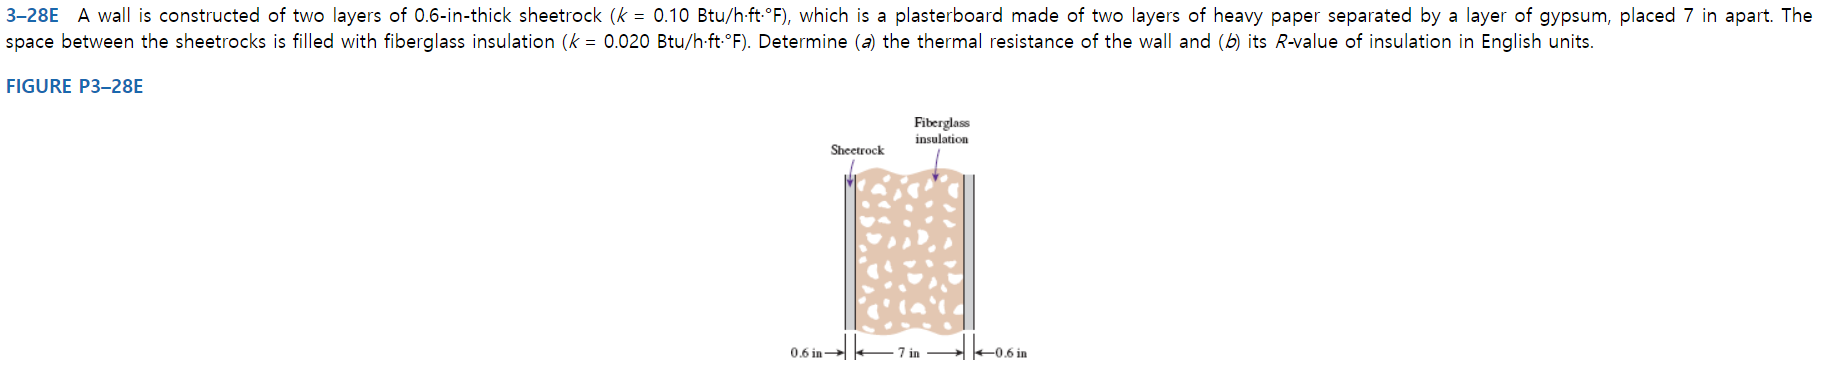 3-28E A wall is constructed of two layers of 0.6-in-thick sheetrock (k = 0.10 Btu/h-ft-°F), which is a plasterboard made of two layers of heavy paper separated by a layer of gypsum, placed 7 in apart. The space between the sheetrocks is filled with fiberglass insulation (k = 0.020 Btu/h-ft F). Determine (a) the thermal resistance of the wall and (b) its R-value of insulation in English units. FIGURE P3-28E Fiberglass insulation Sheetrock 0.6 in 7 in I 0.6 in